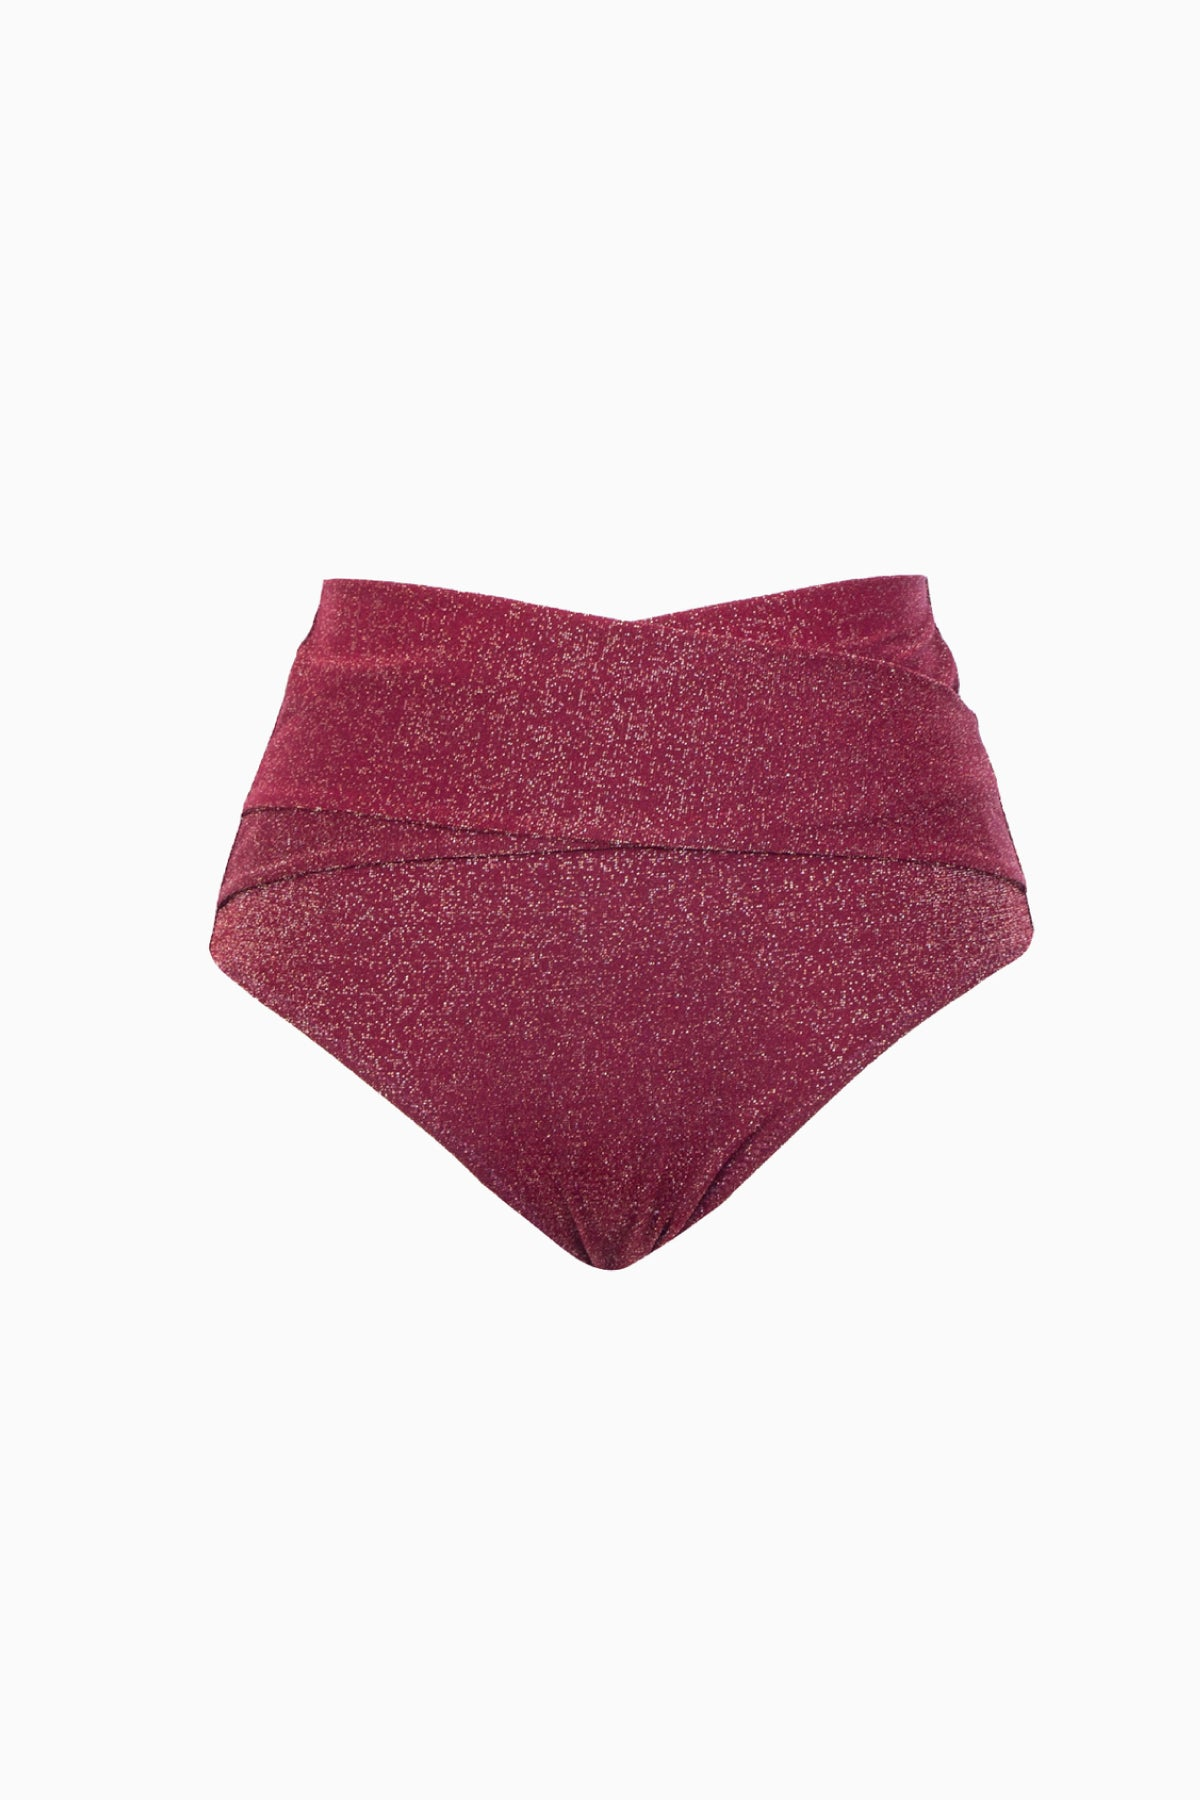 Lonely Connie Brief // Port